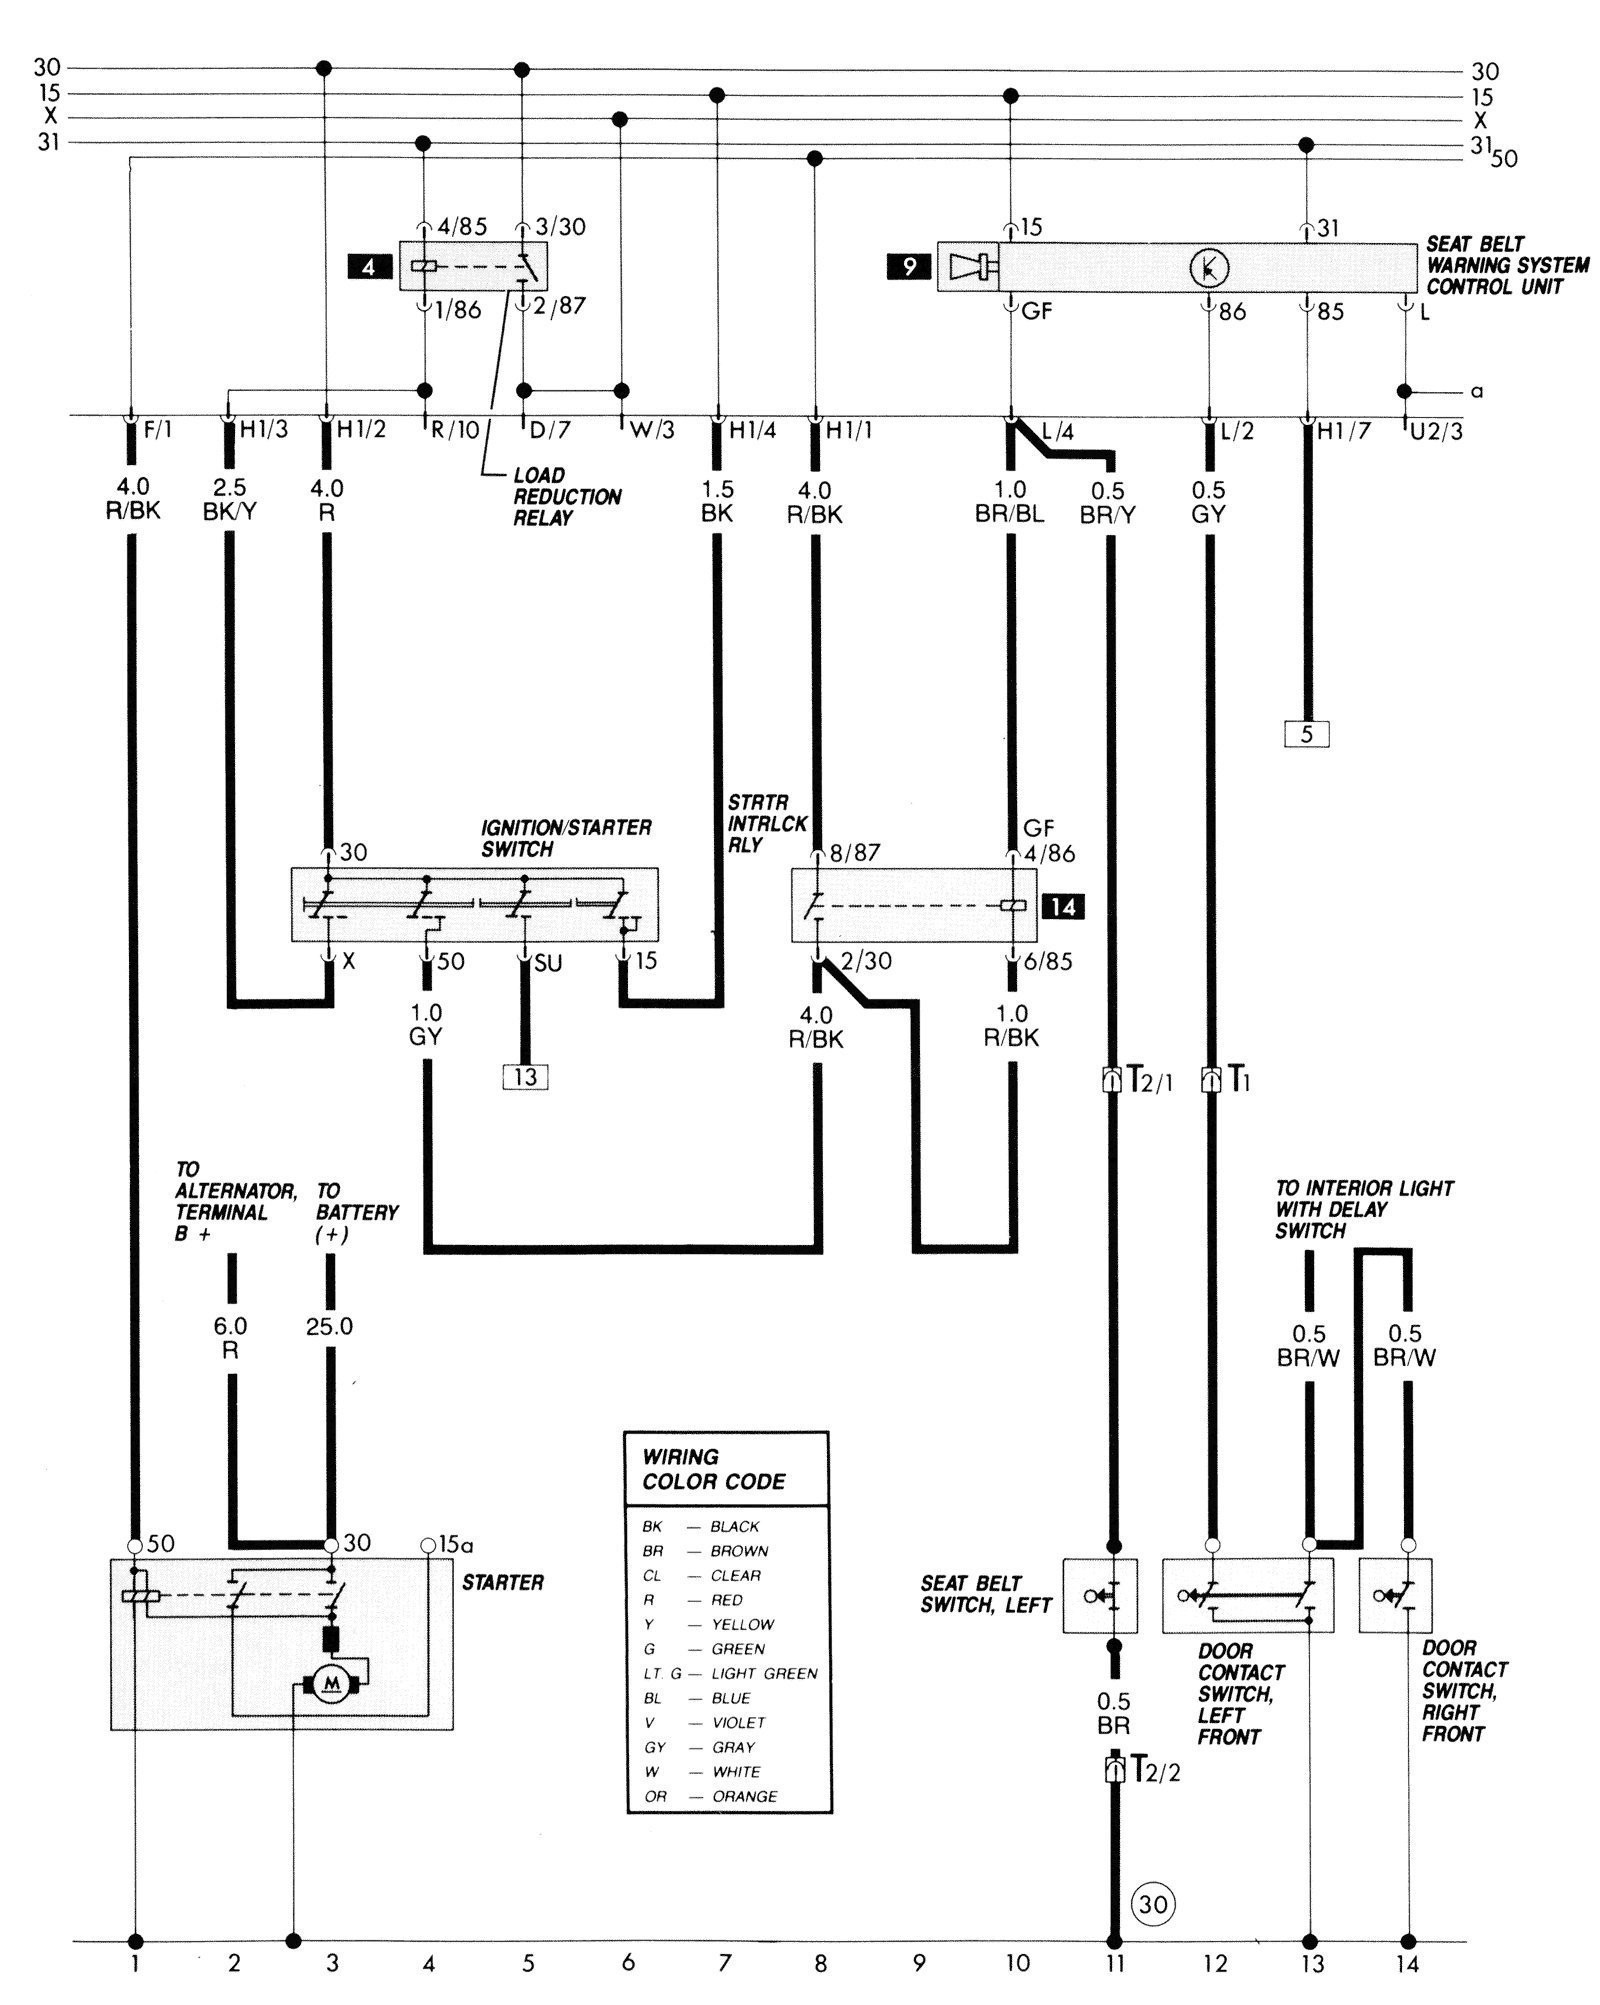 Vw Jetta Wiring Diagram Alt | Wiring Diagram on jeep wrangler alternator wiring harness, vw jetta trailer wiring harness, volvo xc90 alternator wiring harness, ford ranger alternator wiring harness, bmw z3 alternator wiring harness,